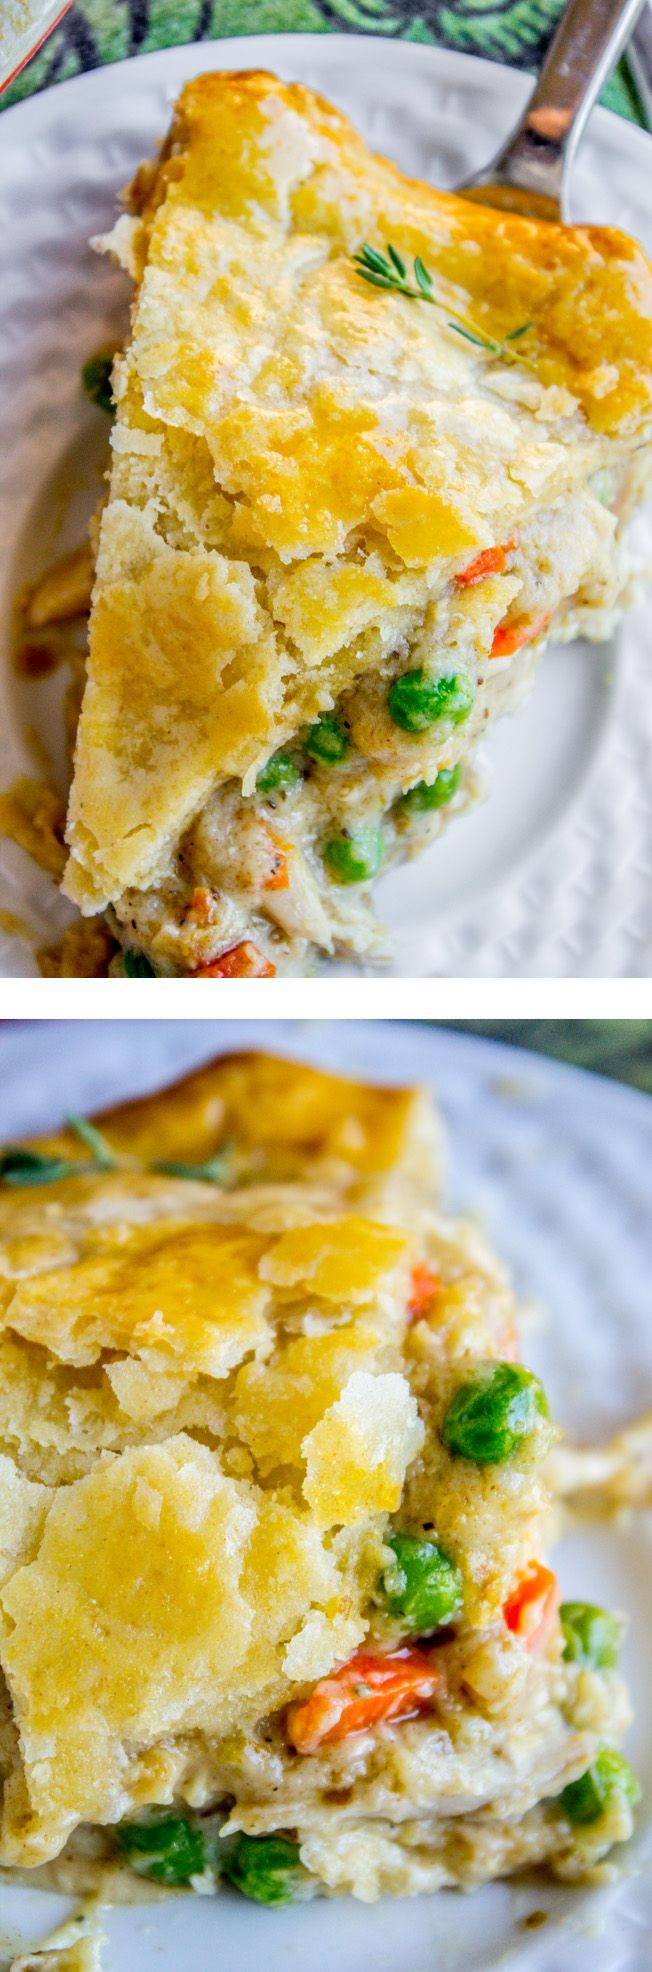 The BEST recipe for Classic Double Crust Chicken Pot Pie! (from The Food Charlatan) Carrots, peas, and rotisserie chicken (or use leftover turkey from Thanksgiving!) come together in a deliciously flavorful gravy. All wrapped up in a buttery, flaky pie crust! If you've only tried frozen pot pies from the store...please, I'm begging you, make this. This is comfort food at it's best. You will be eating this for breakfast lunch and dinner...at least I did.